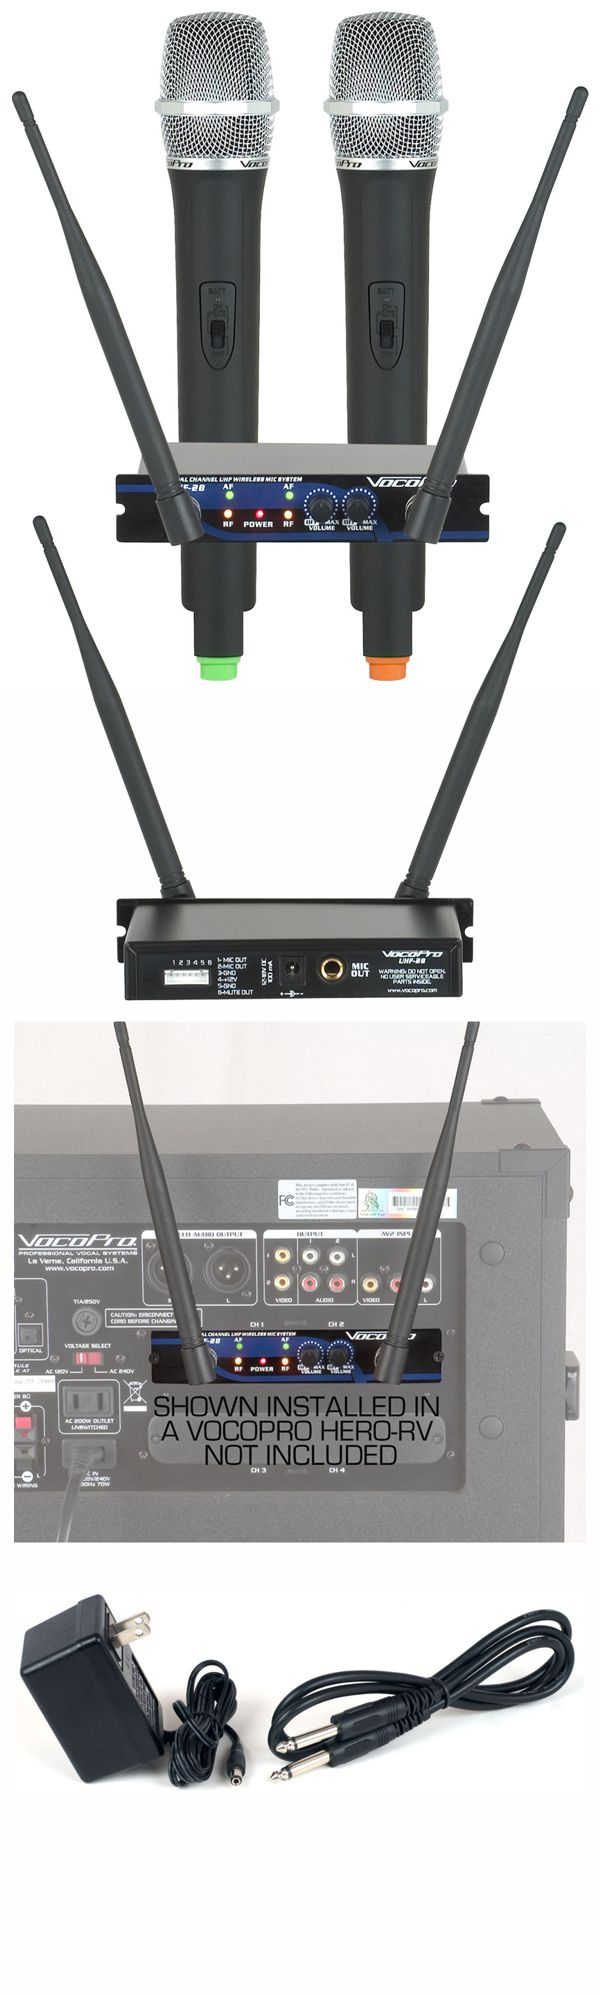 Dual Channel UHF Wireless Mic System (Freq: S, T)